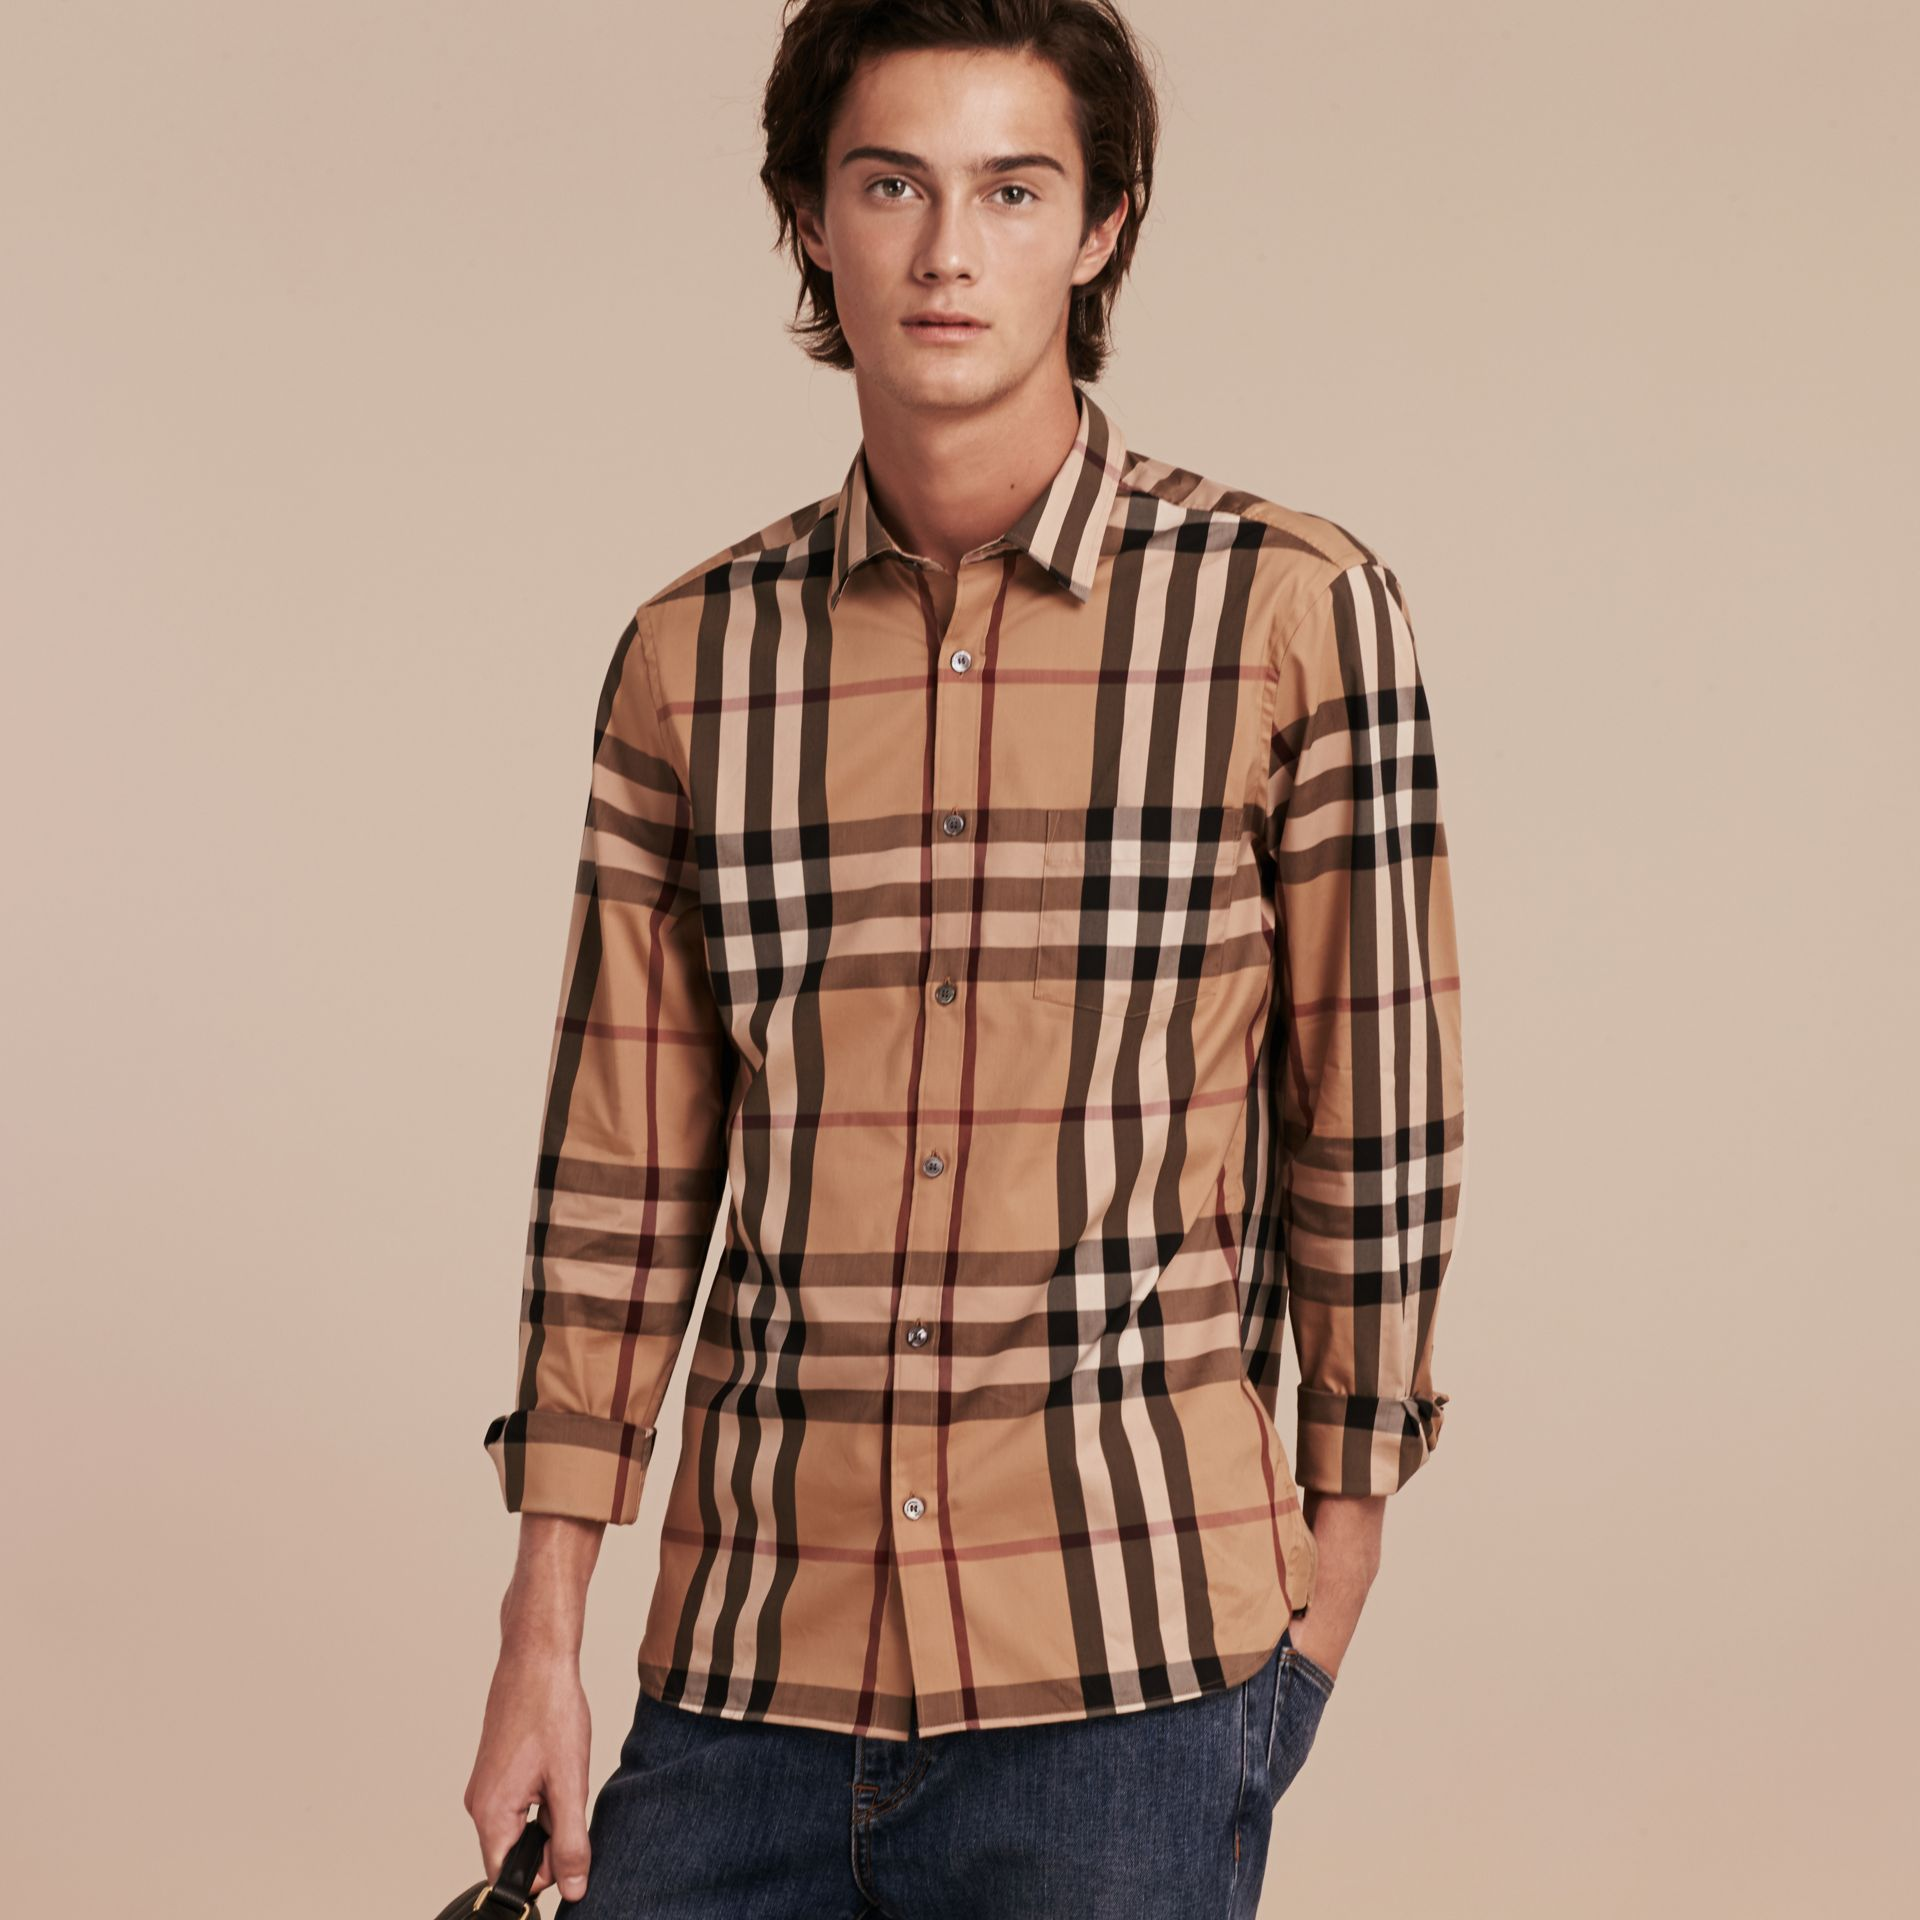 Camel Check Stretch Cotton Shirt Camel - gallery image 6